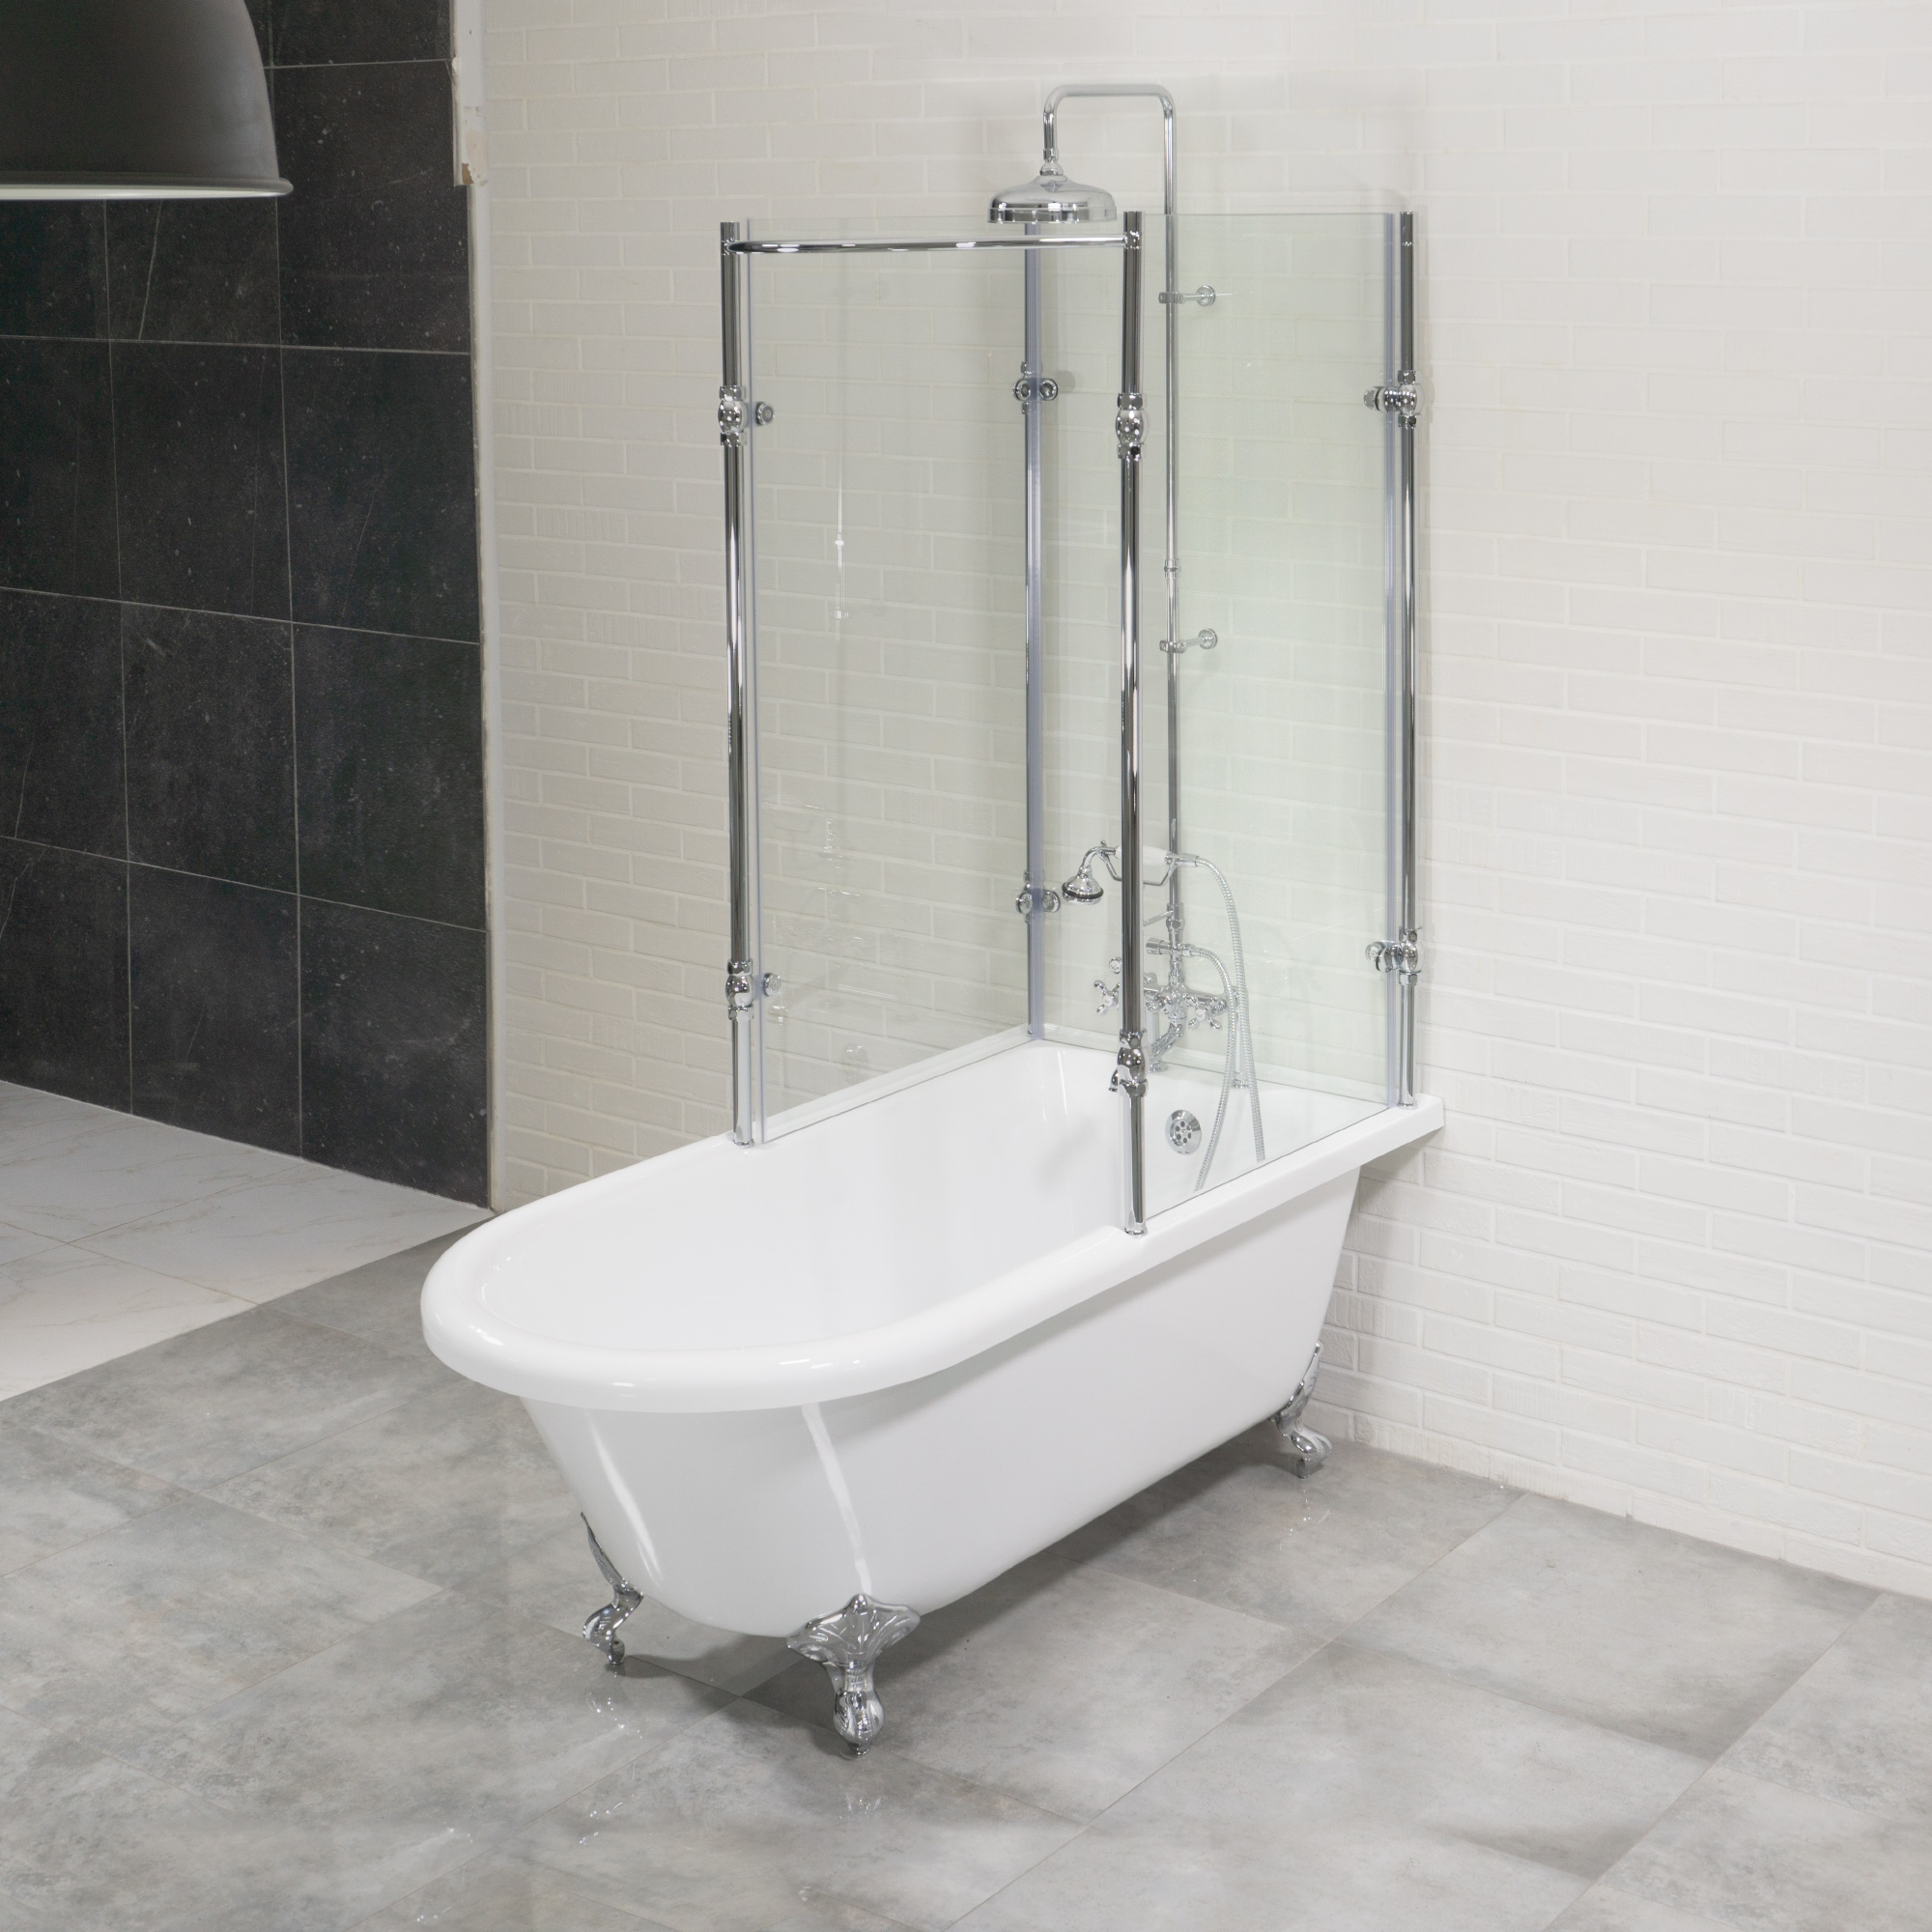 clawfoot tub and shower package. Oasis 59  Vintage Extra Wide Clawfoot Tub with Tempered Glass Shower Enclosure Package Antique Surround